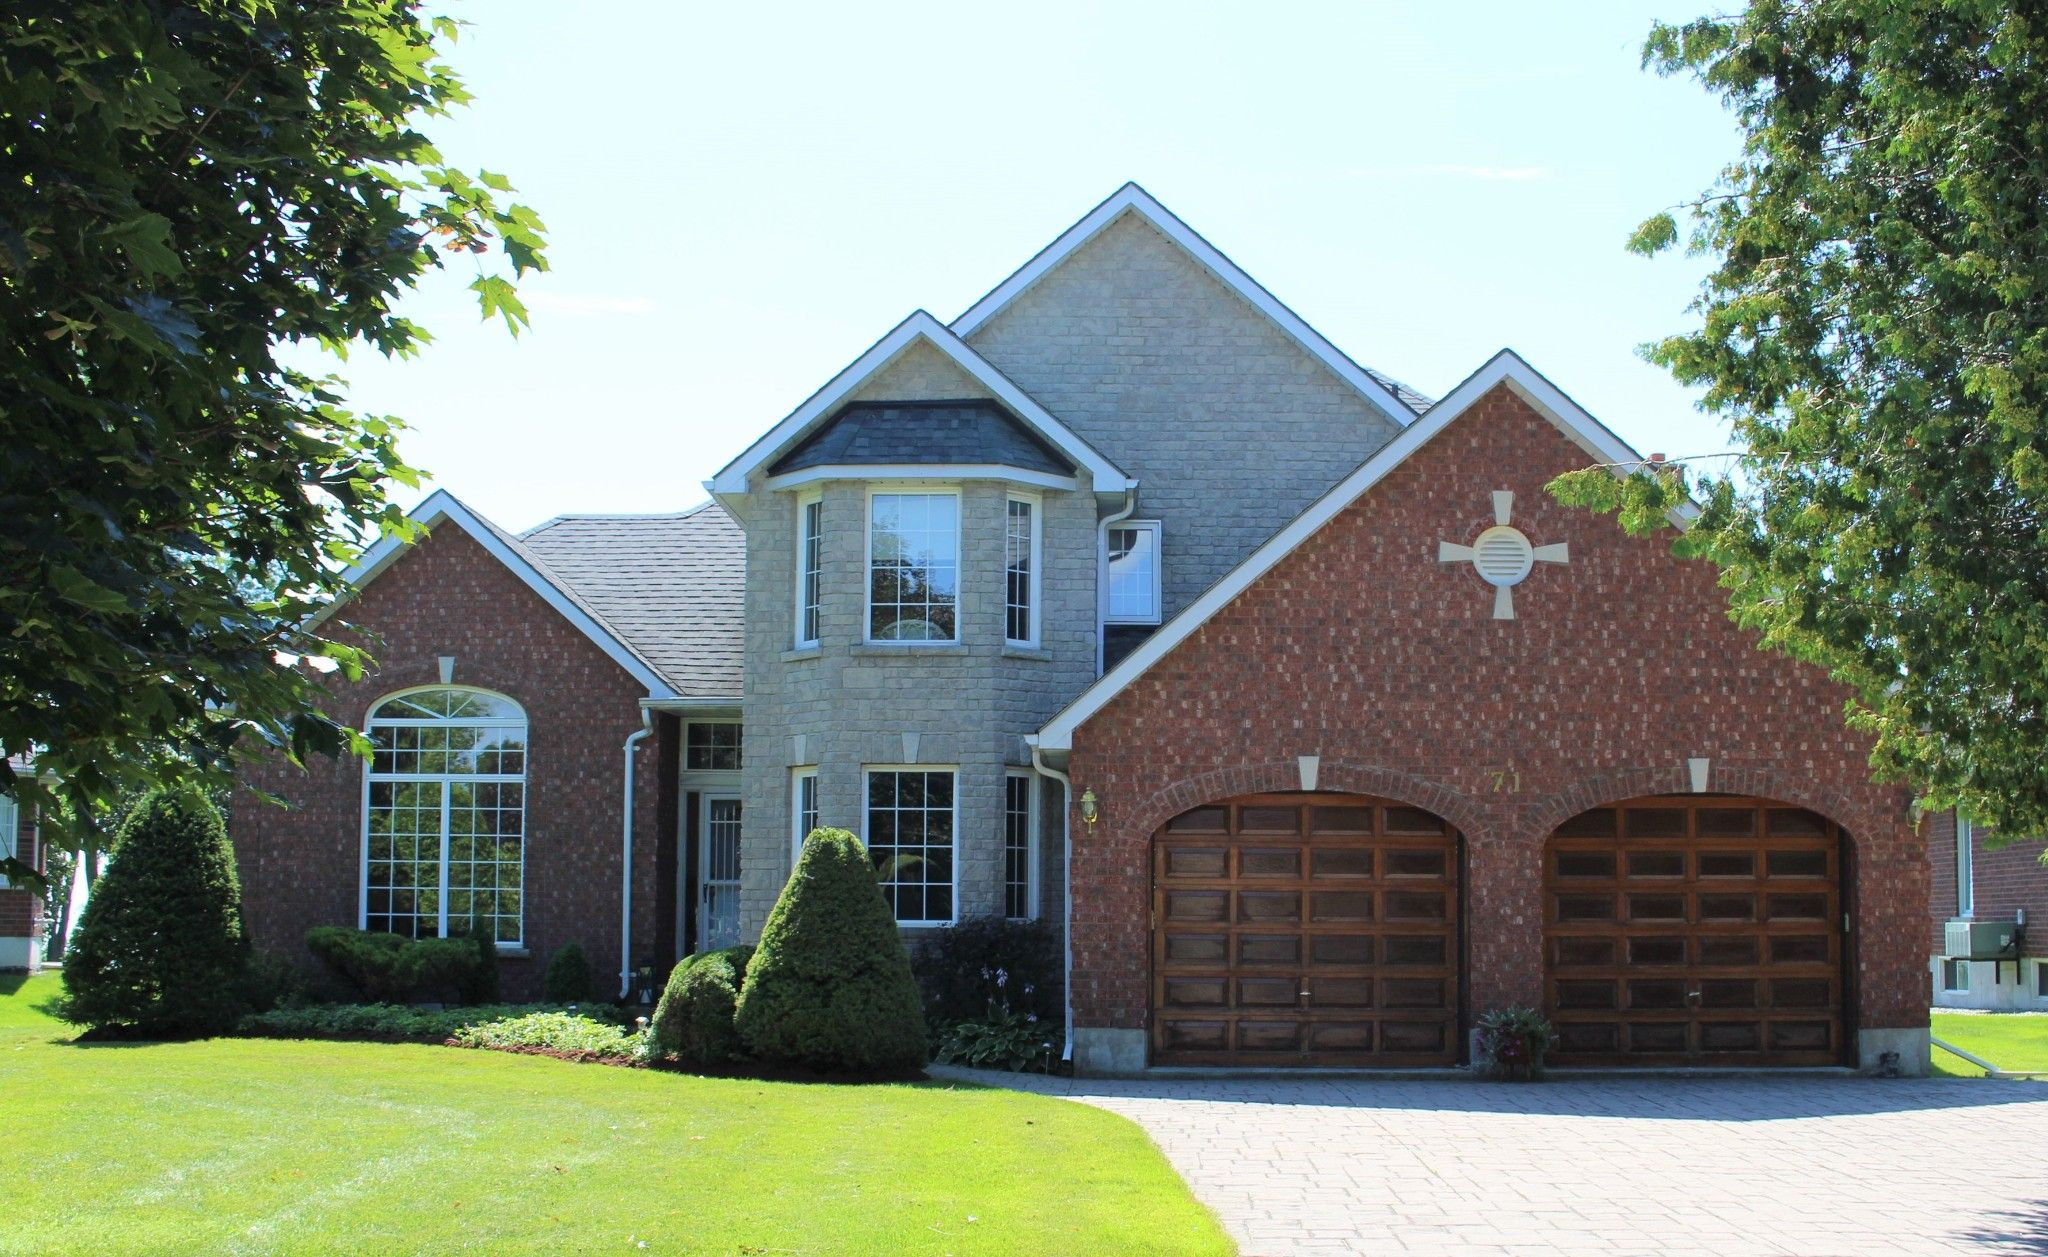 Main Photo: 71 East House Crescent in Cobourg: House for sale : MLS®# 219949